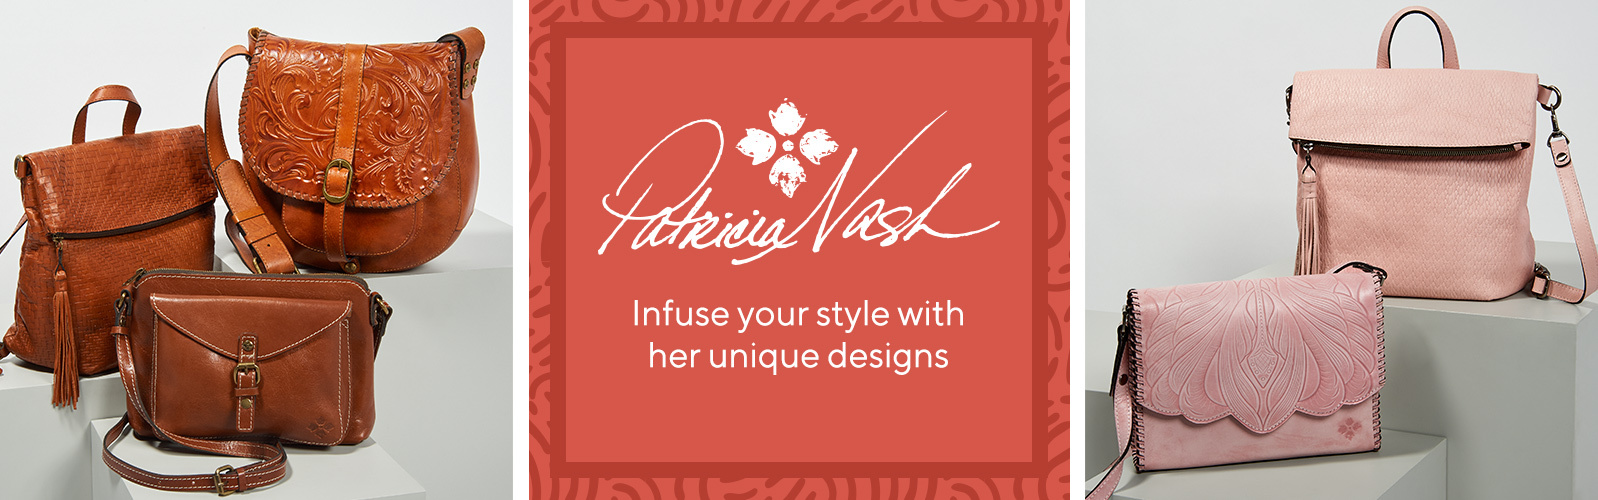 Patricia Nash Infuse your style with her unique designs